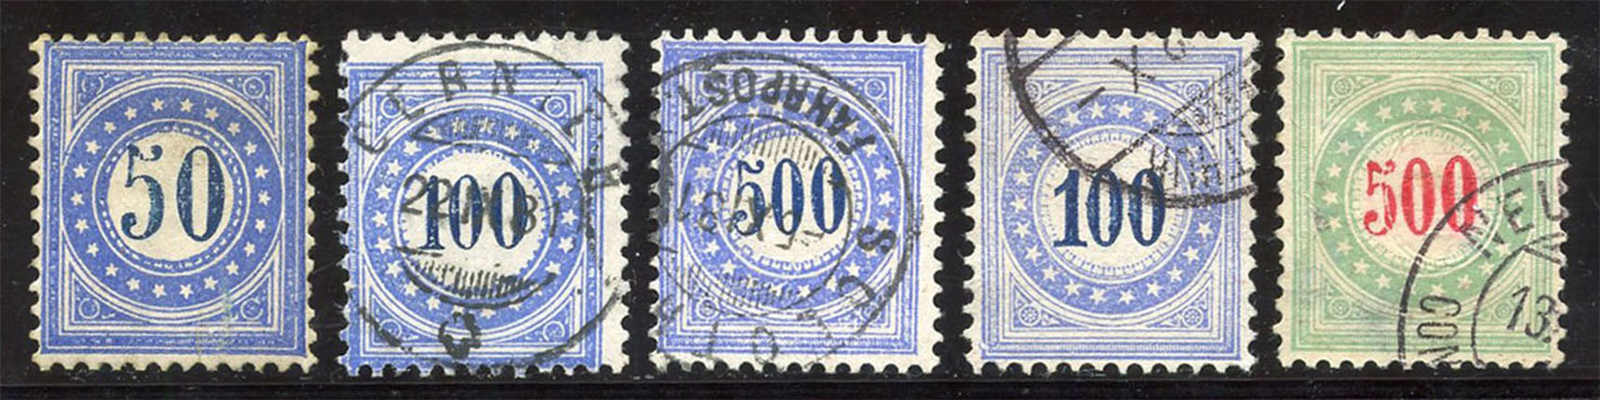 Lot 236 - schweiz schweiz -  Schwarzenbach Auktion Zurich 67th Auction - Session II